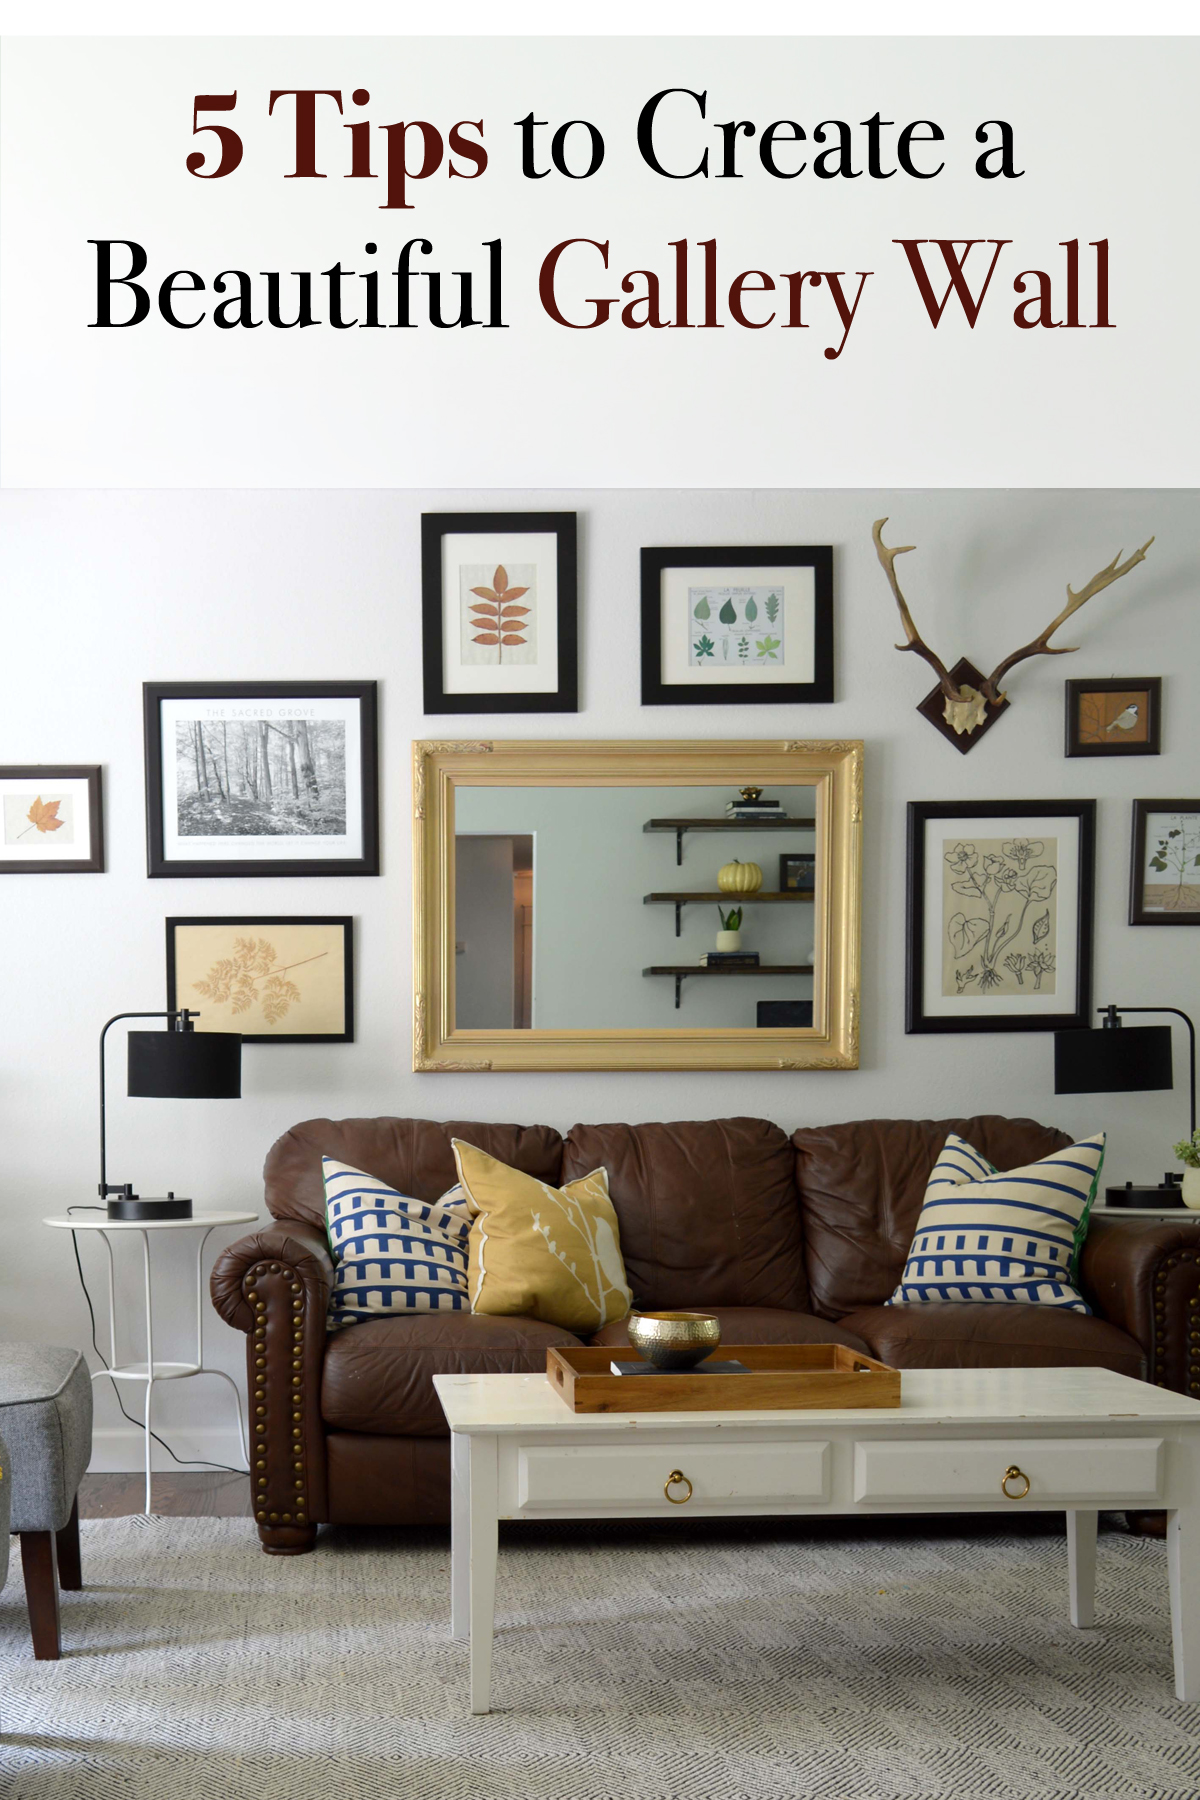 5 Tips to Create a Beautiful Gallery Wall.jpg